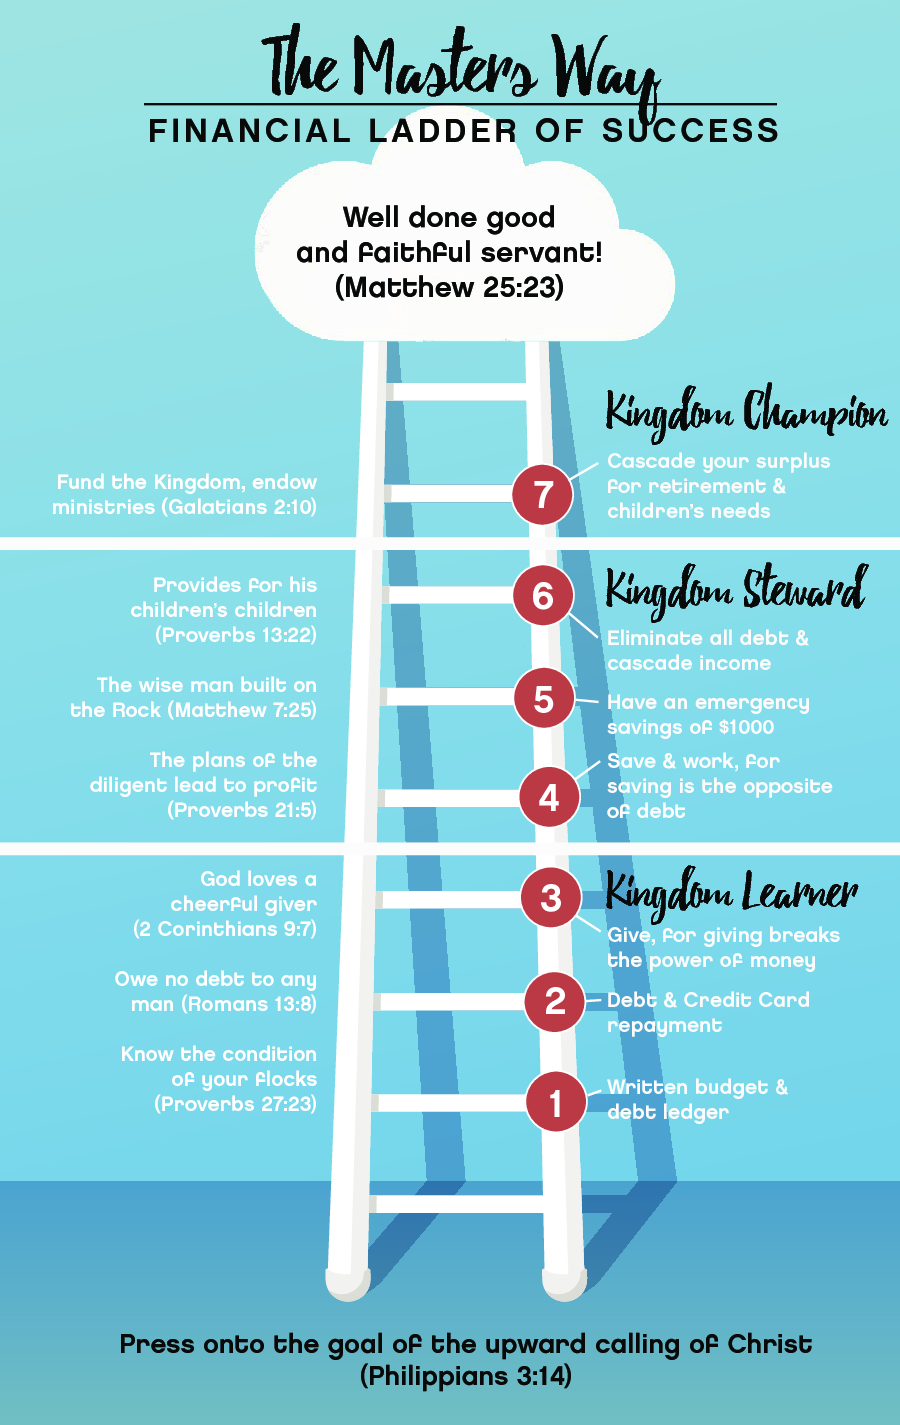 The Masters Way Ladder of Success